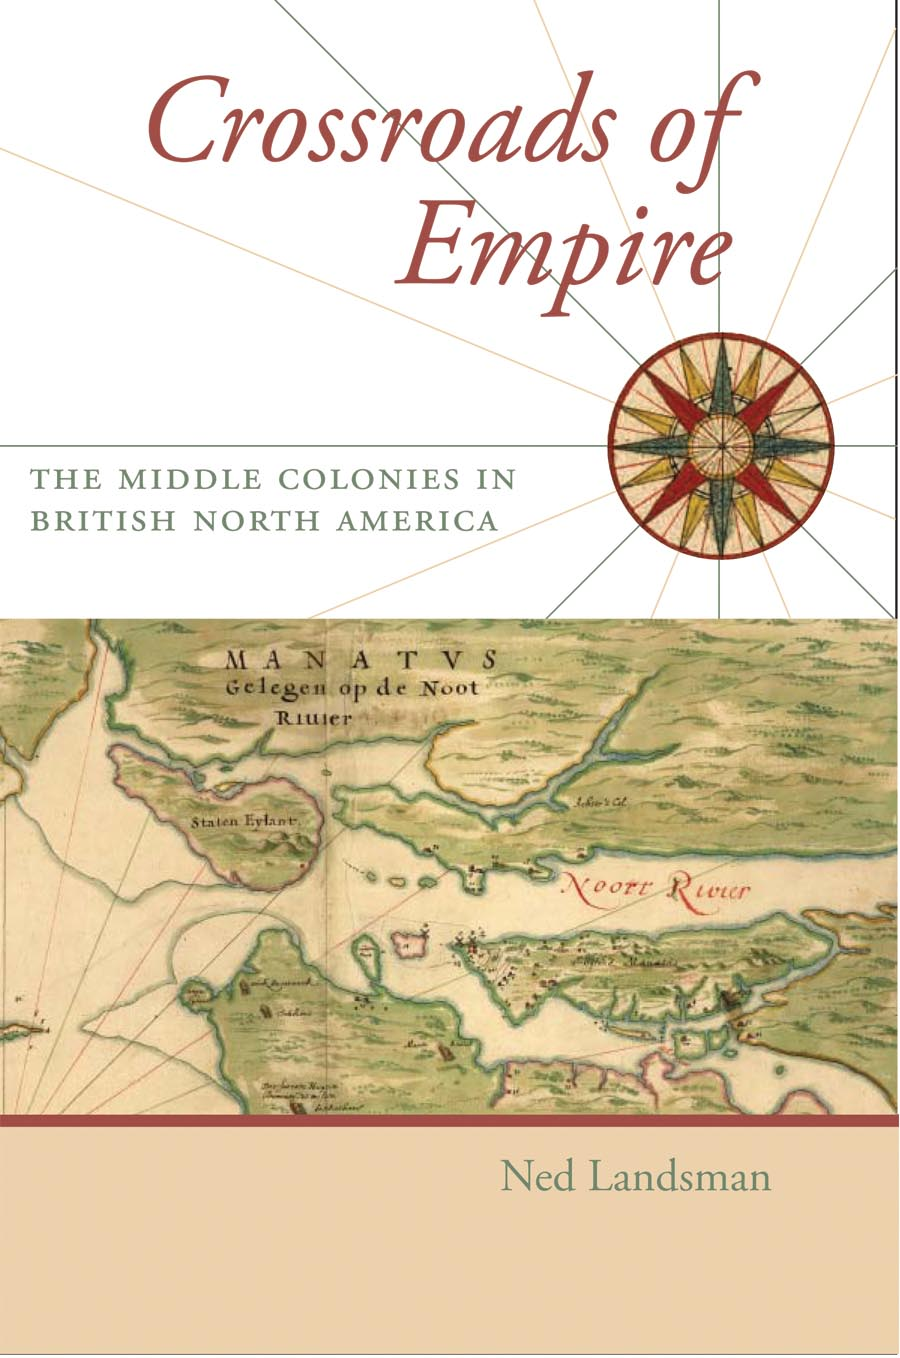 Crossroads of Empire – The Middle Colonies in British North America